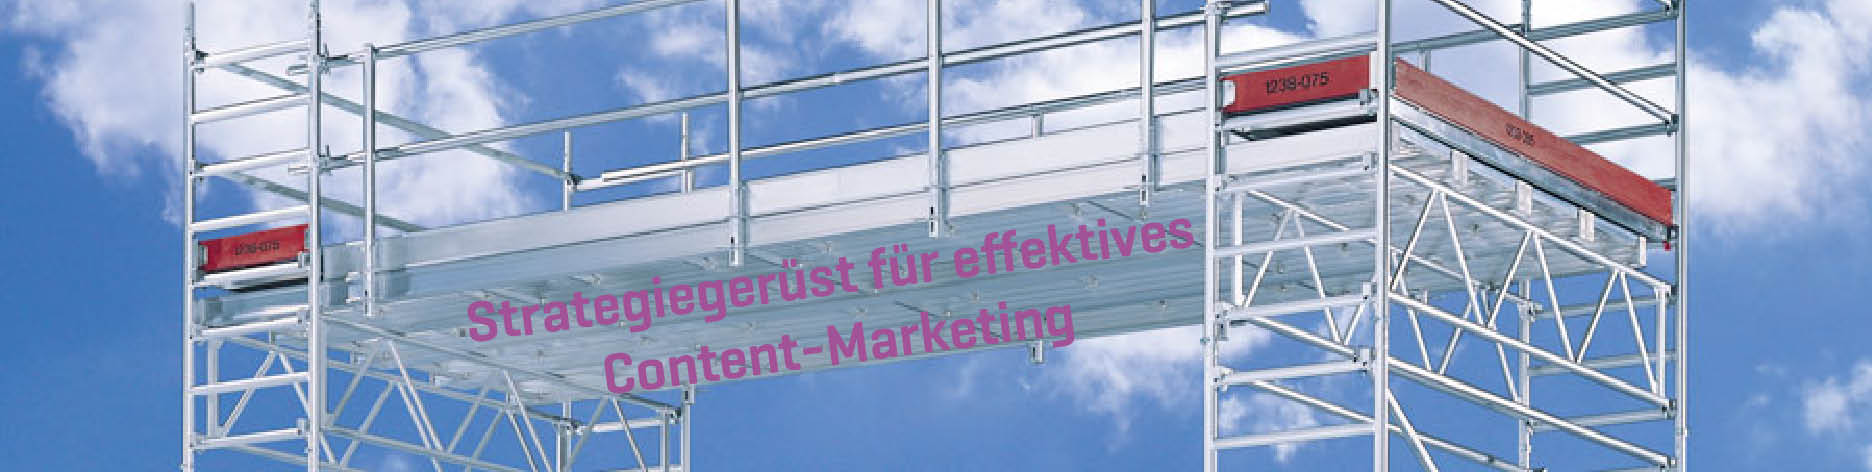 Strategiegerüst für effektives Content-Marketing - Commento GmbH